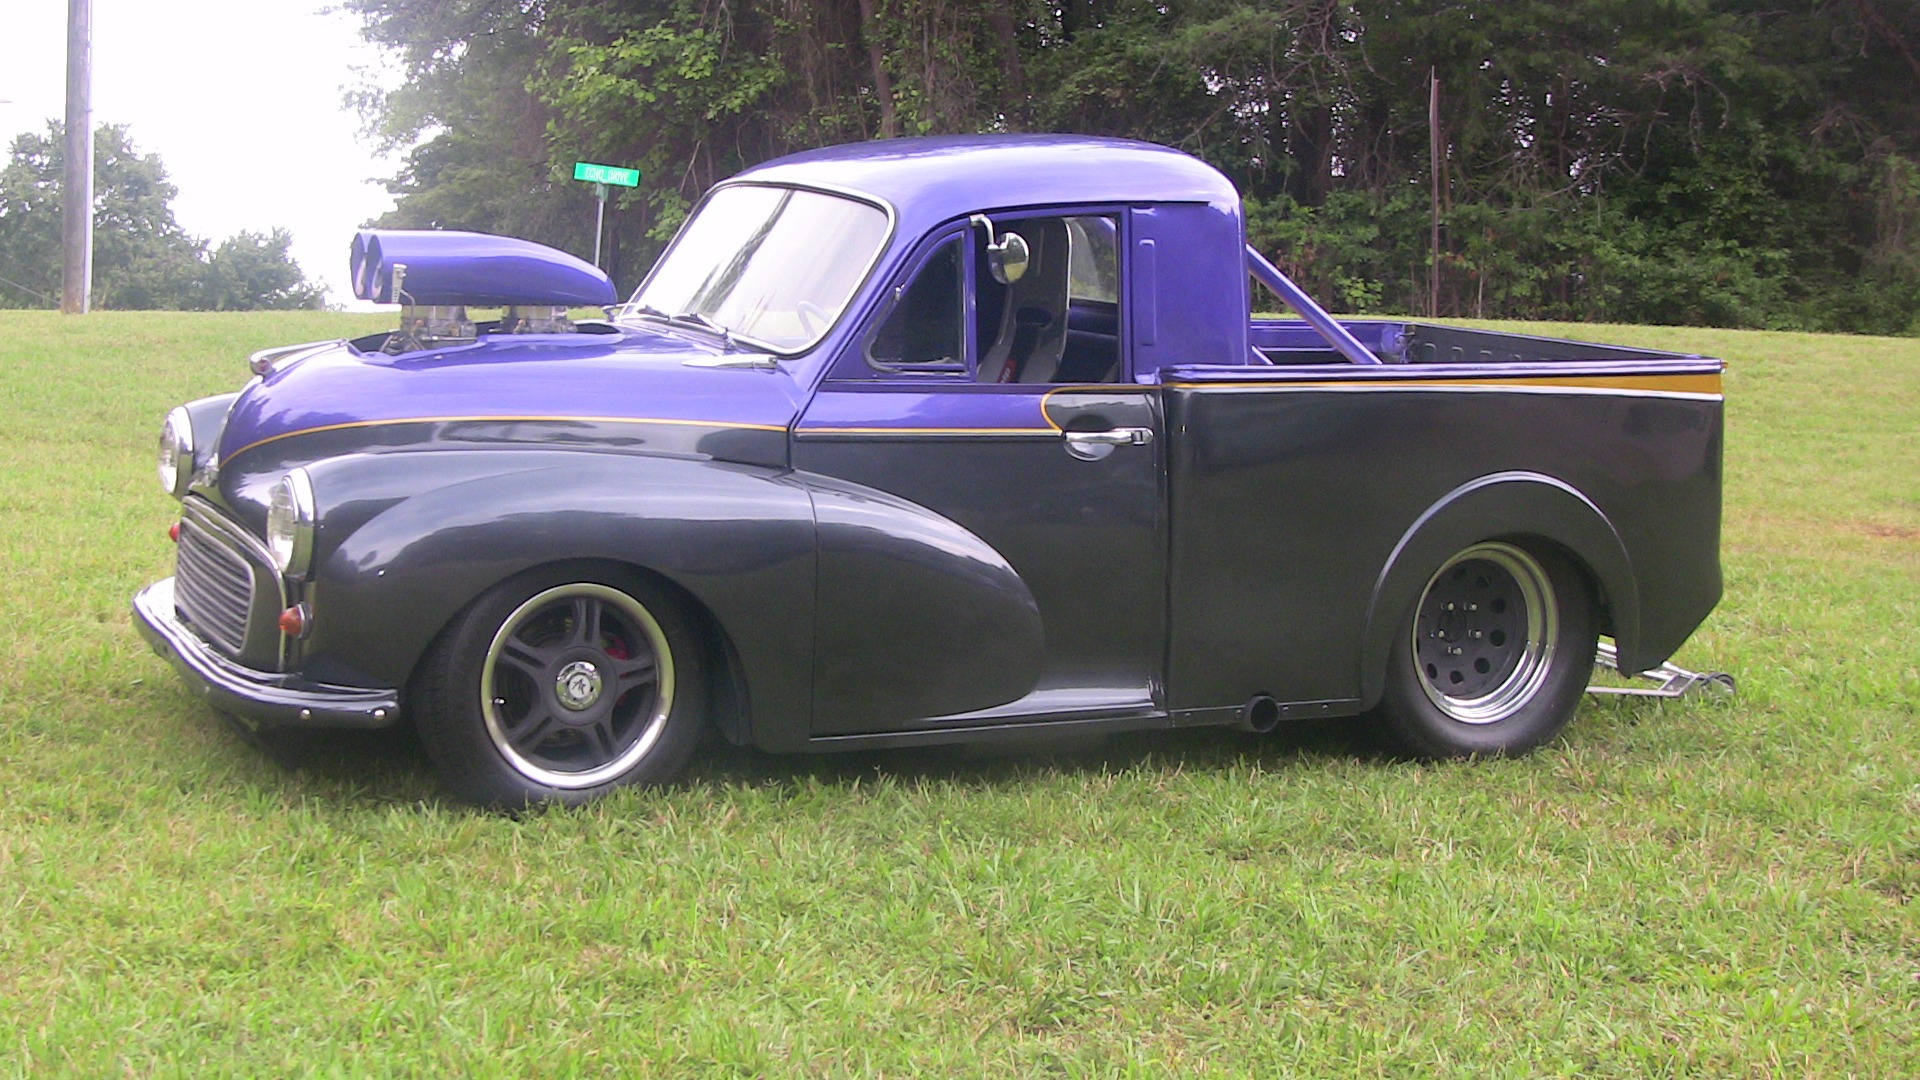 How To Calculate Apr On A Loan >> 1960 Morris Minor Pickup Truck Stock # A120 for sale near Cornelius, NC | NC Morris Minor Dealer